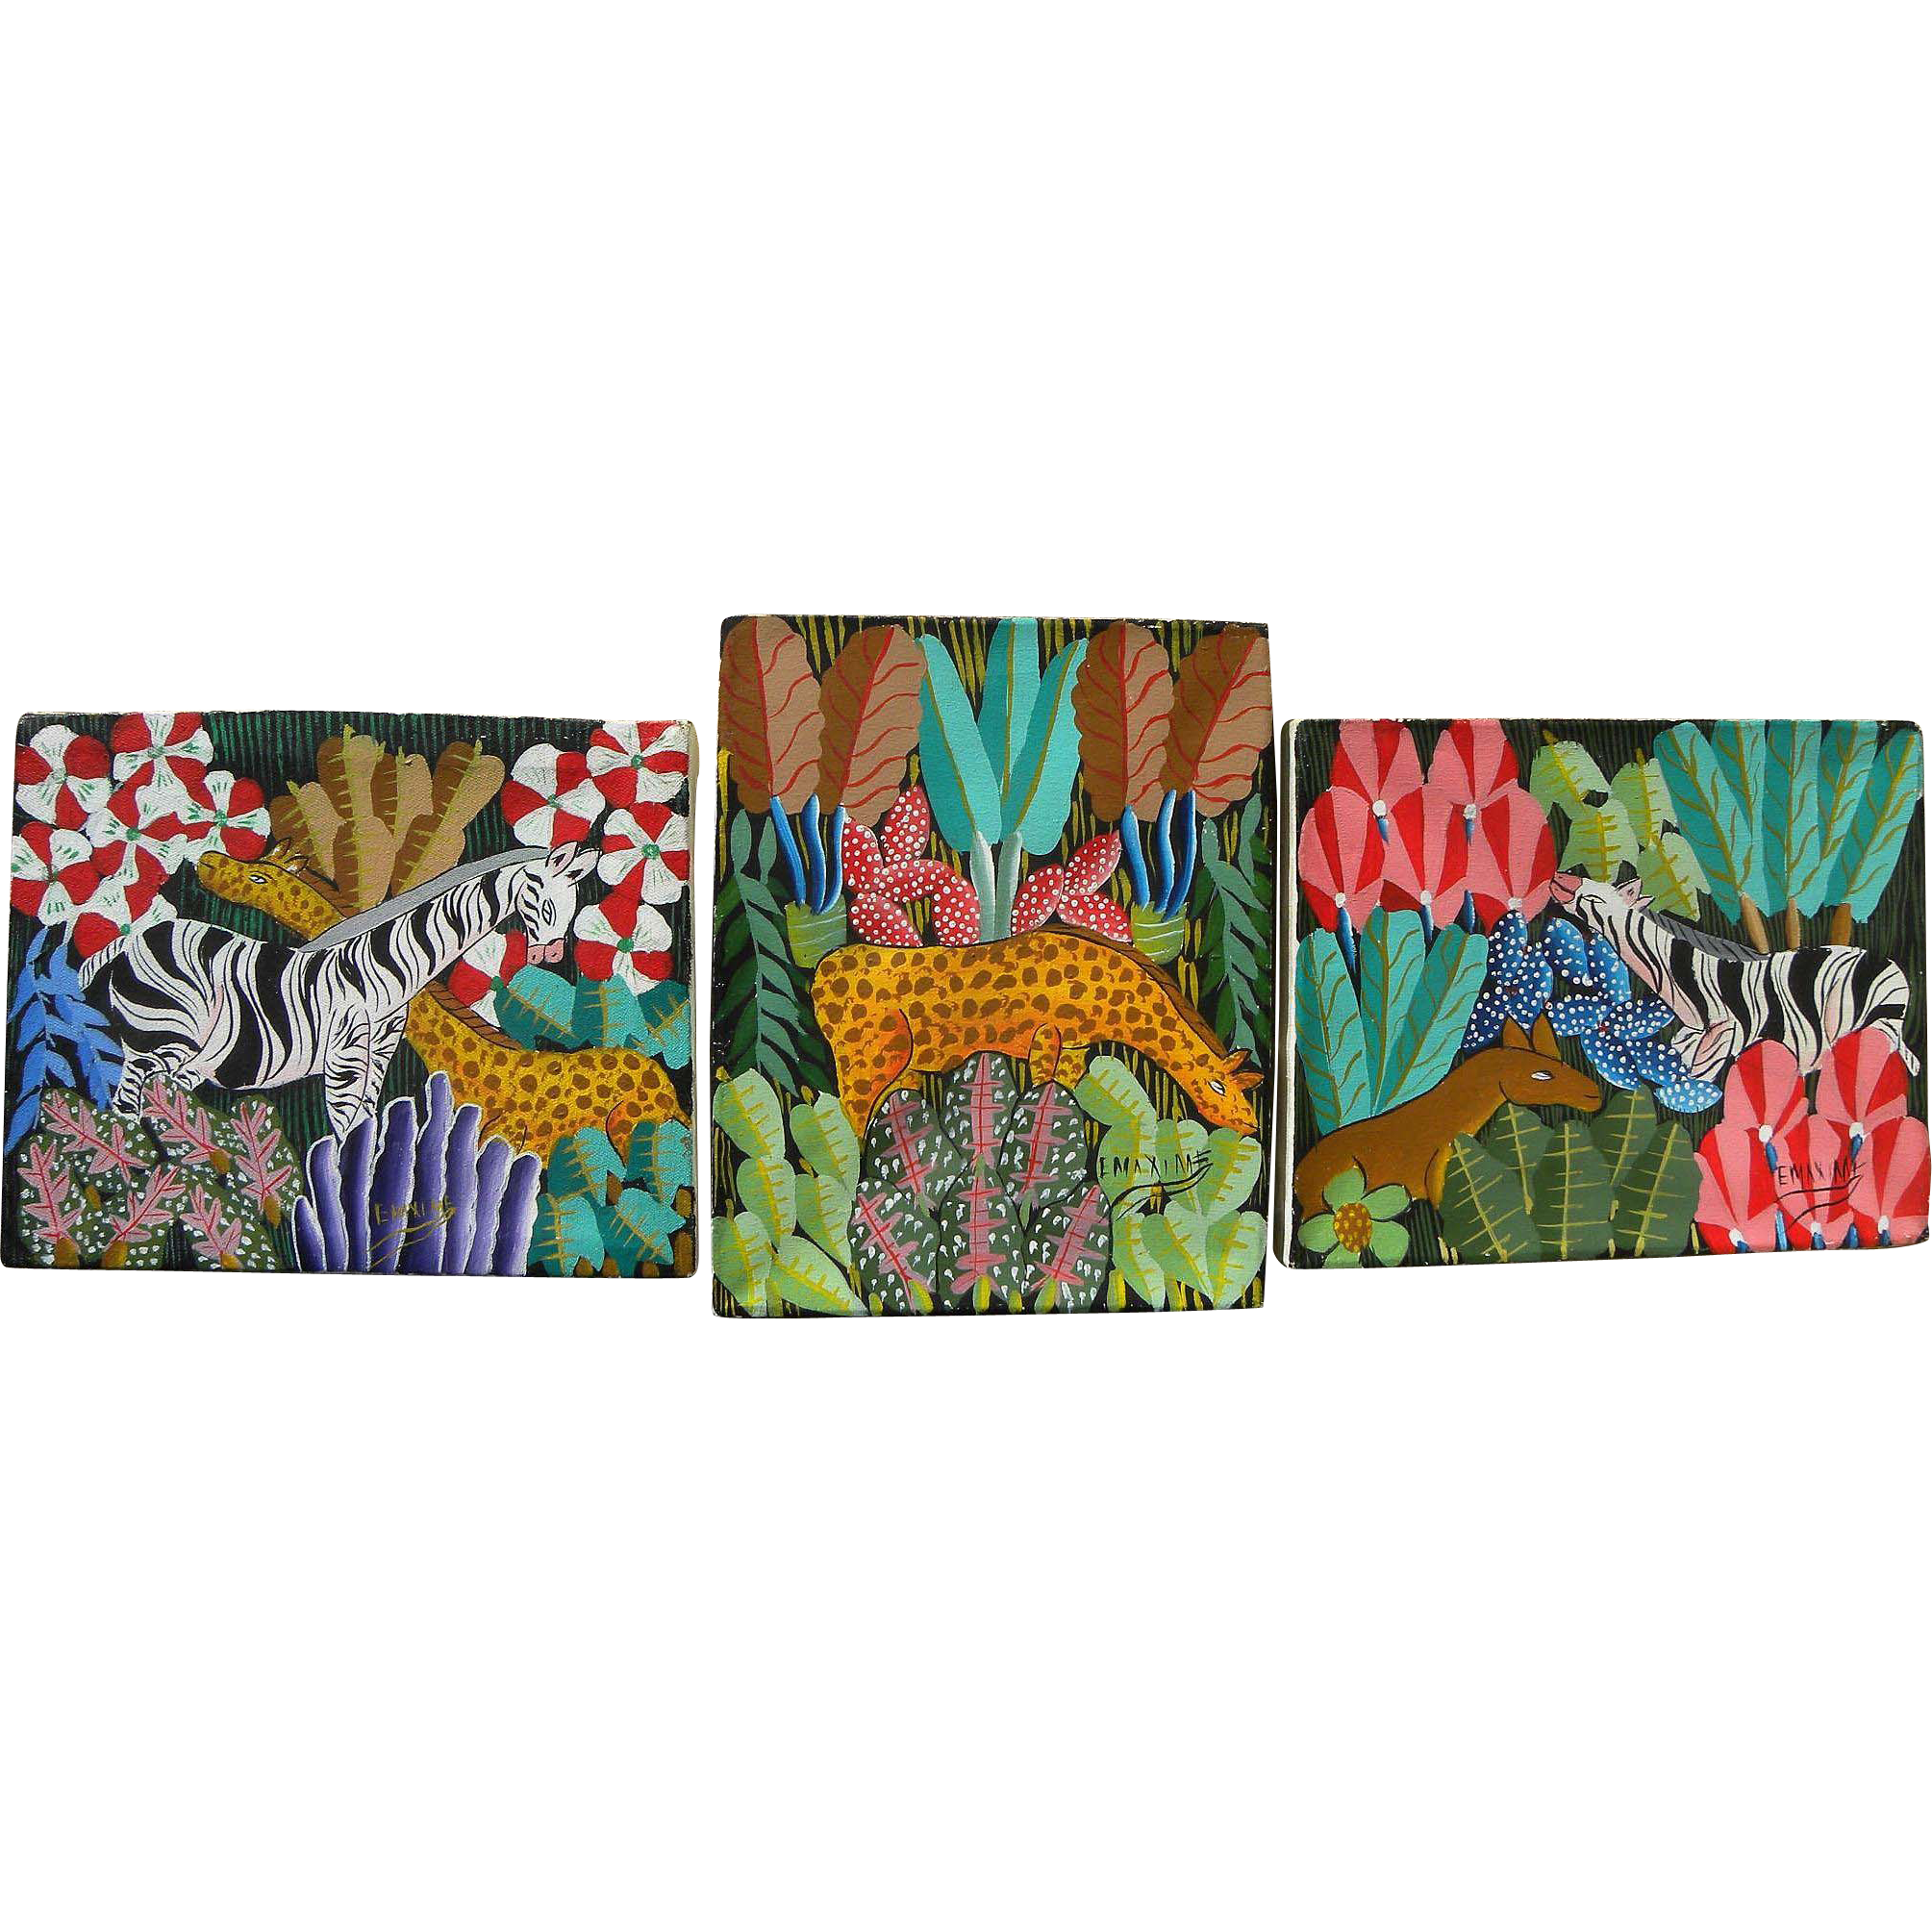 Haitian art THREE naive colorful paintings of zebras and giraffes in landscapes